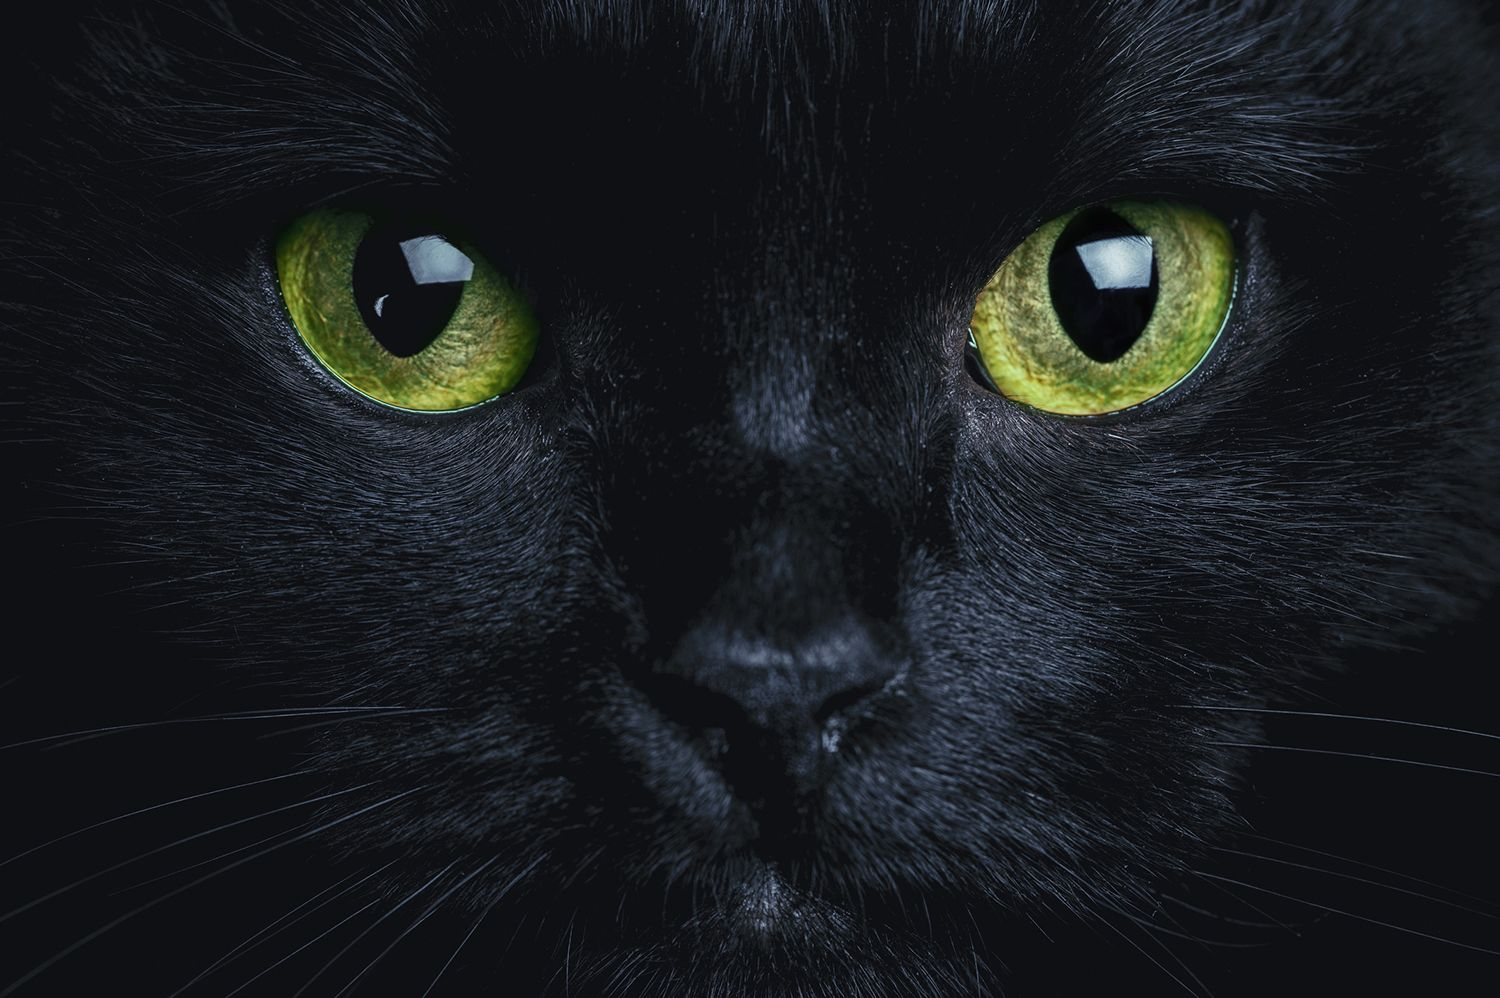 7 Superstitions About Cats From Around the World | Mental Floss